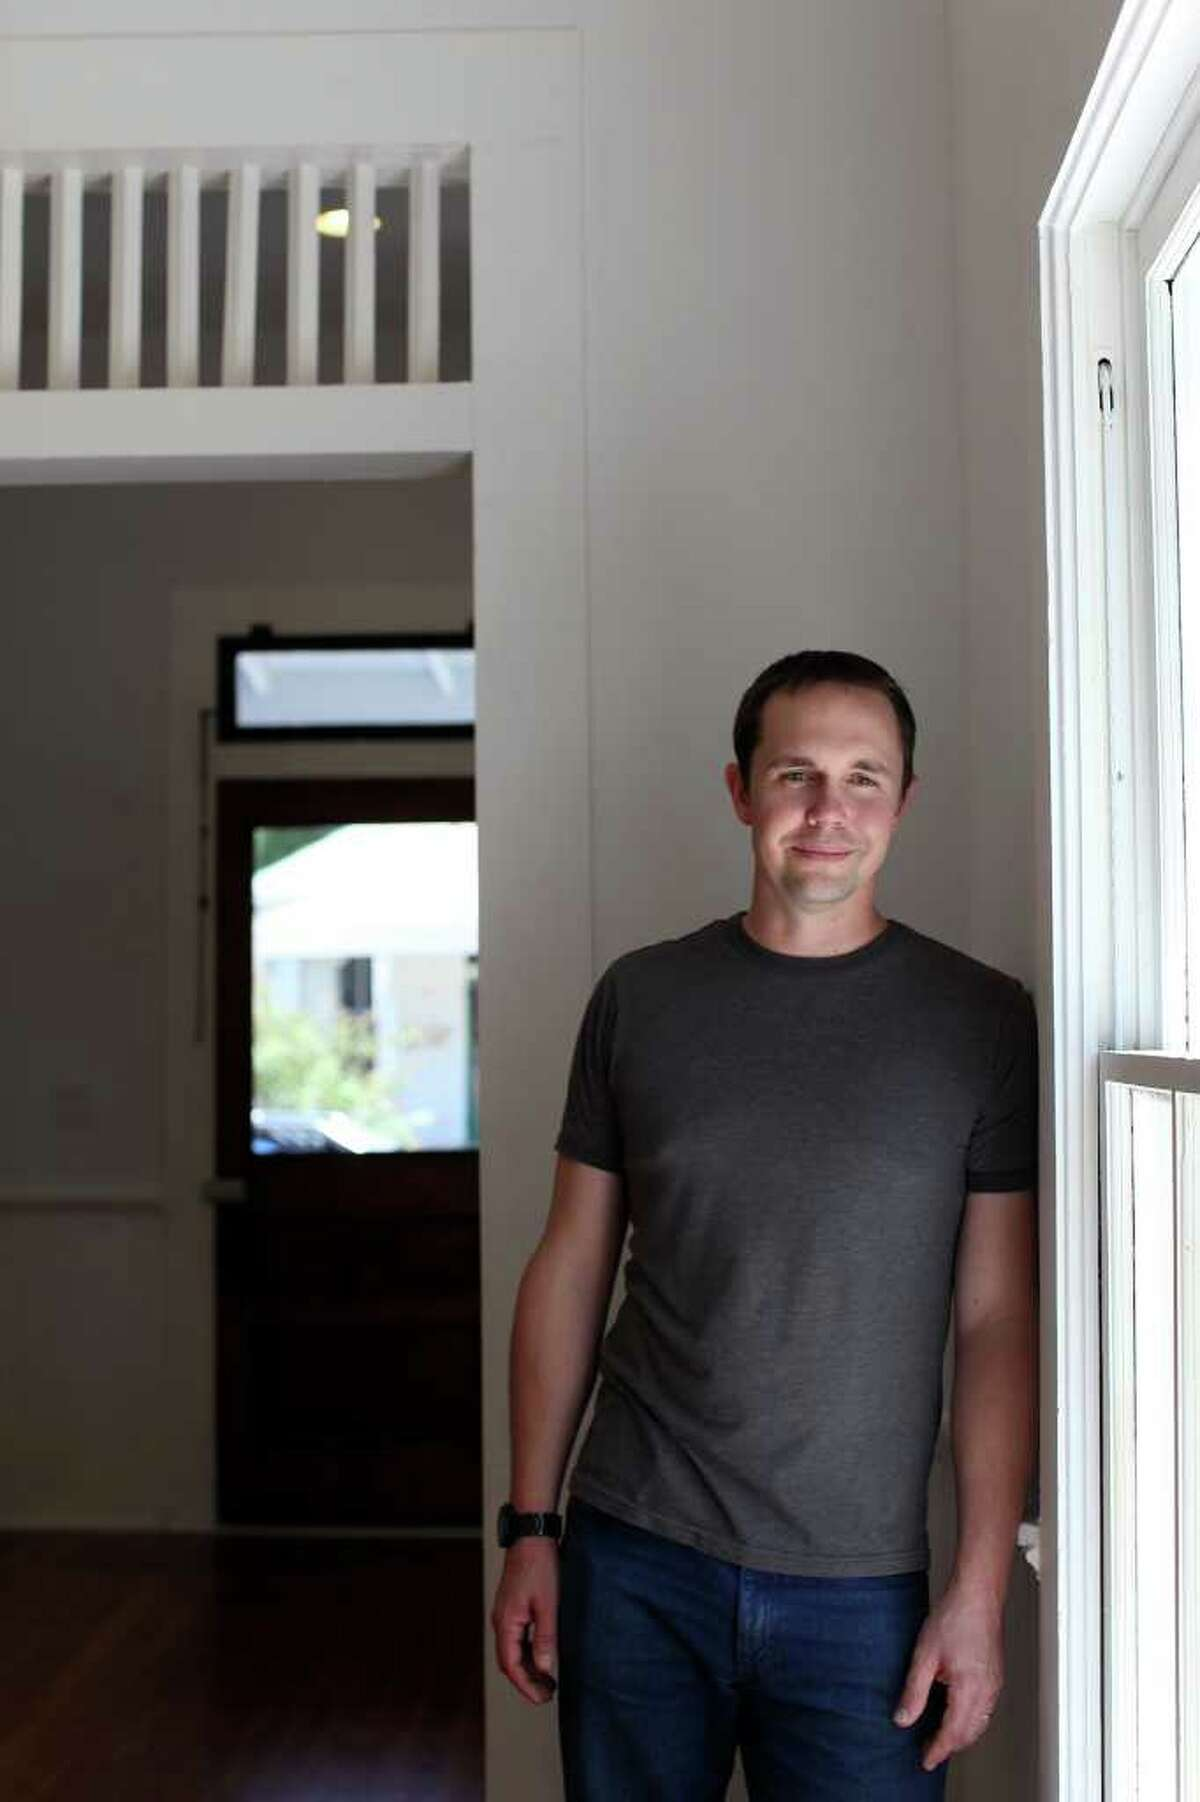 Metro - Josh Clapp stands in the dining room in the house he recently bought with his wife, Joanna Pierce, that was renovated by CVF Homes in the Lavaca neighborhood, in San Antonio on Thursday, August 11, 2011. LISA KRANTZ/lkrantz@express-news.net